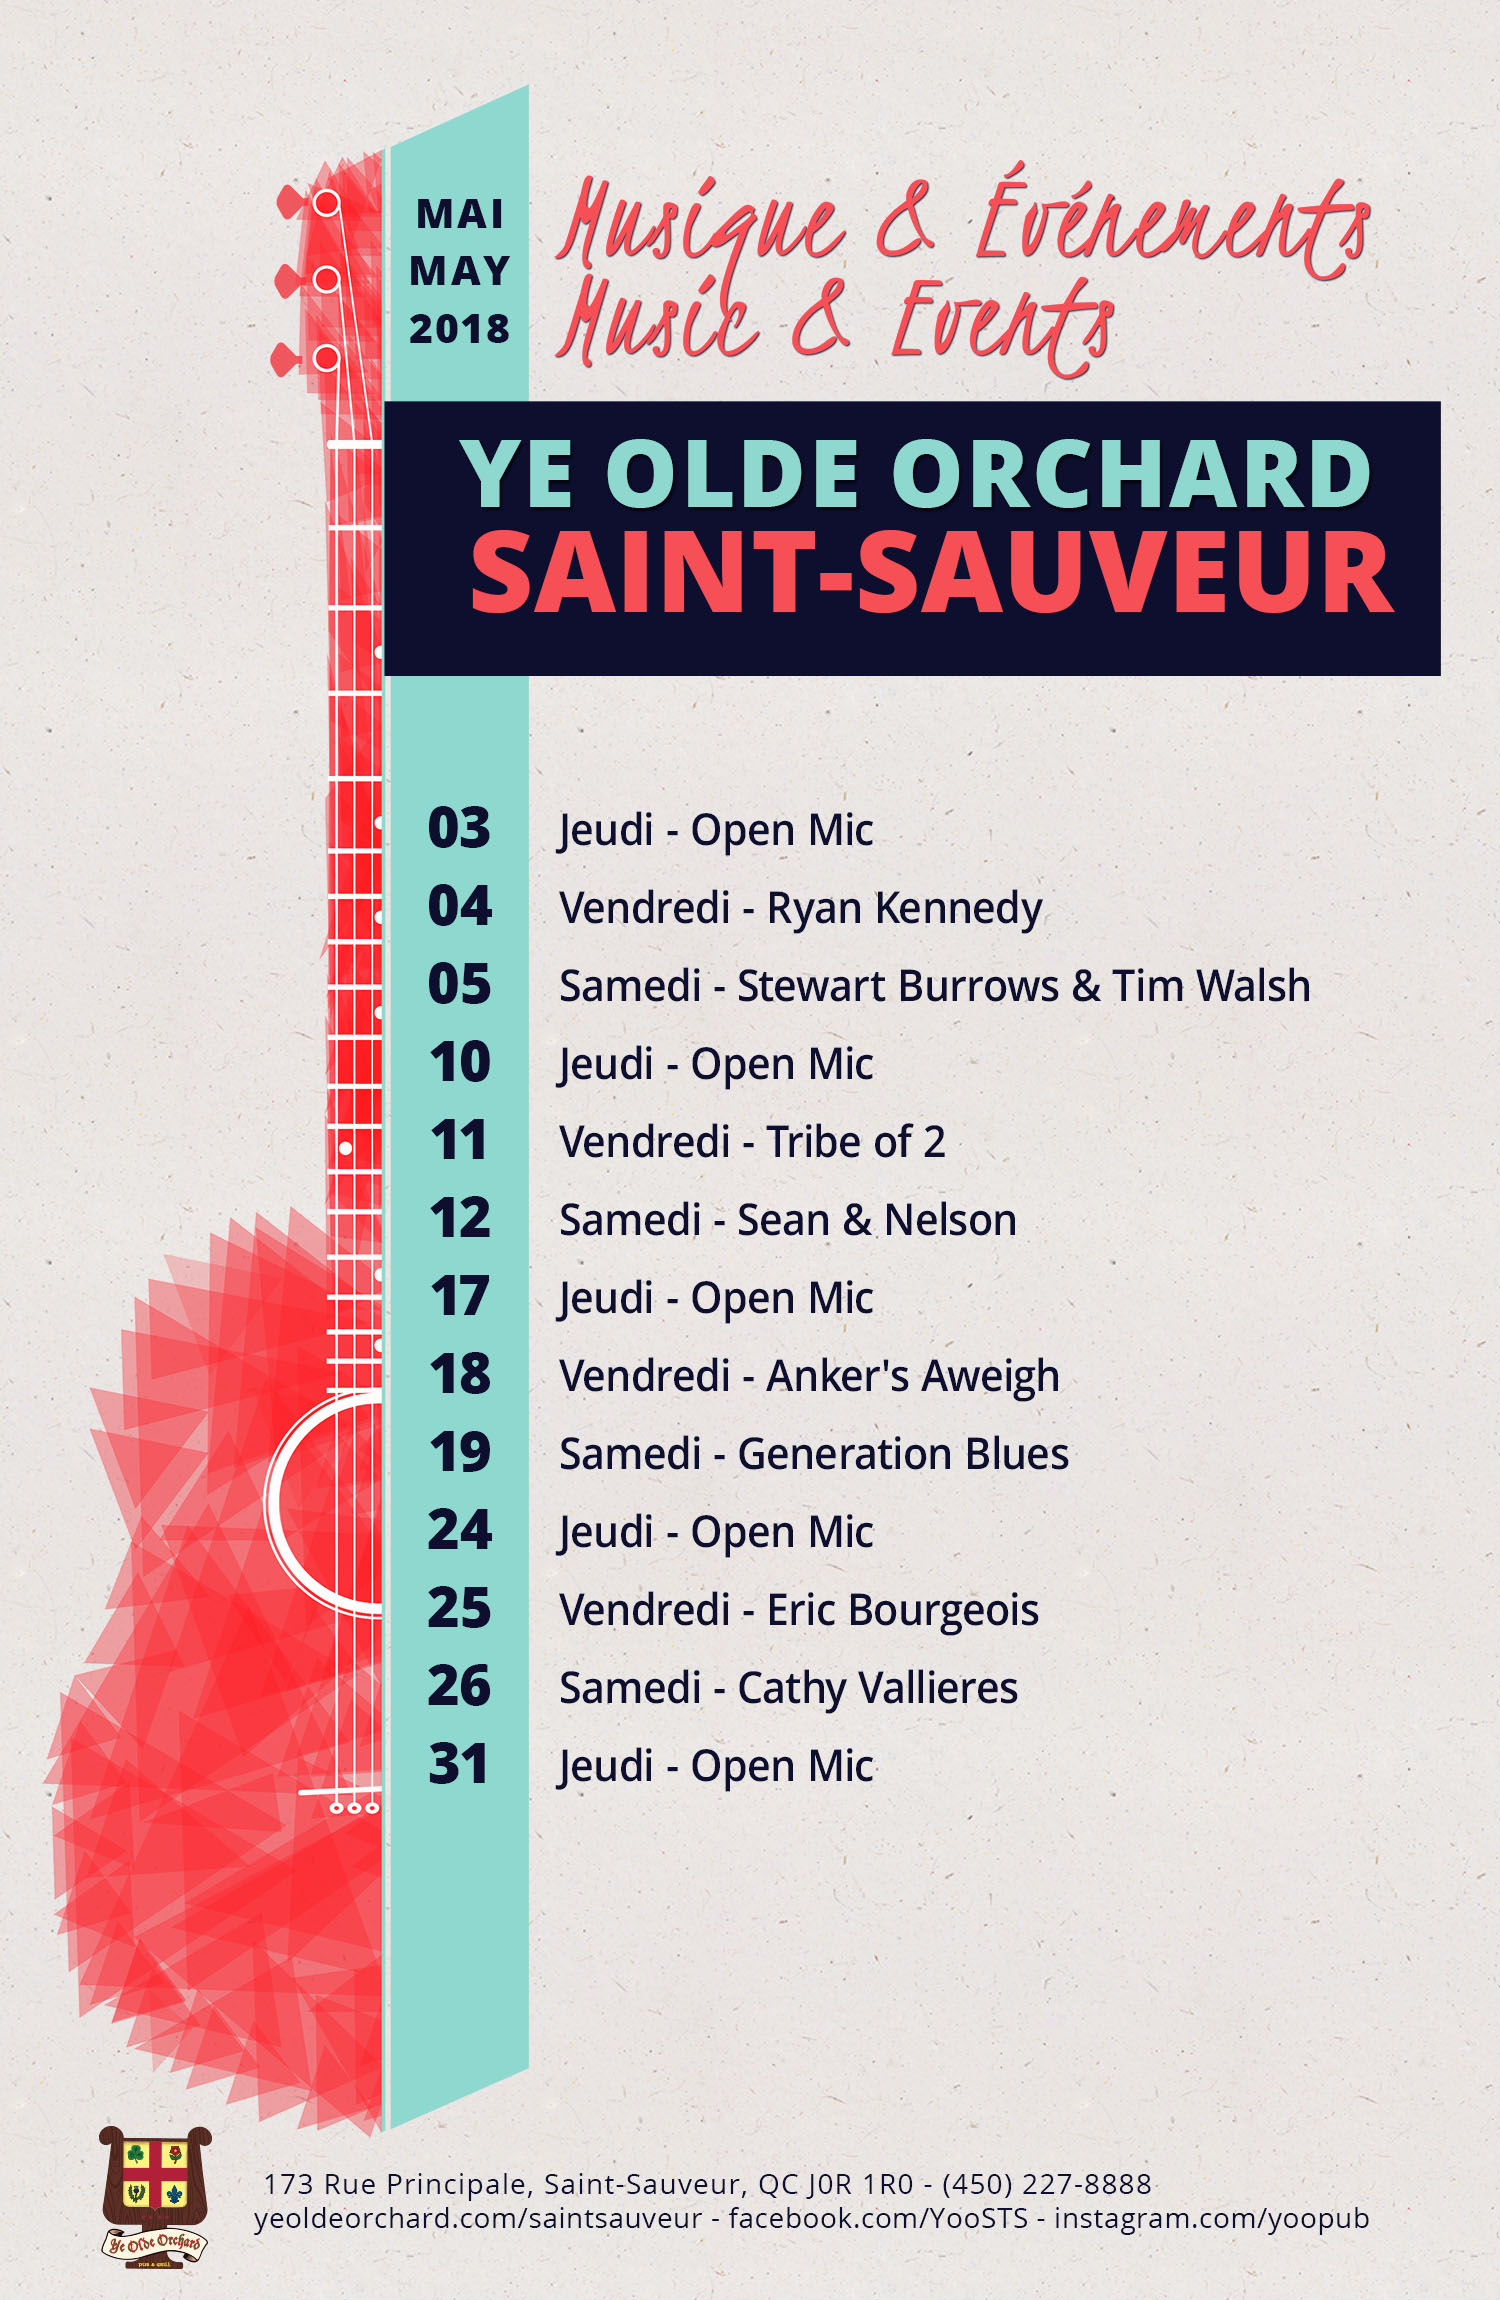 ye-olde-orchard-pub-music-and-events-calendar-SaintSauveur-MAY-WEB